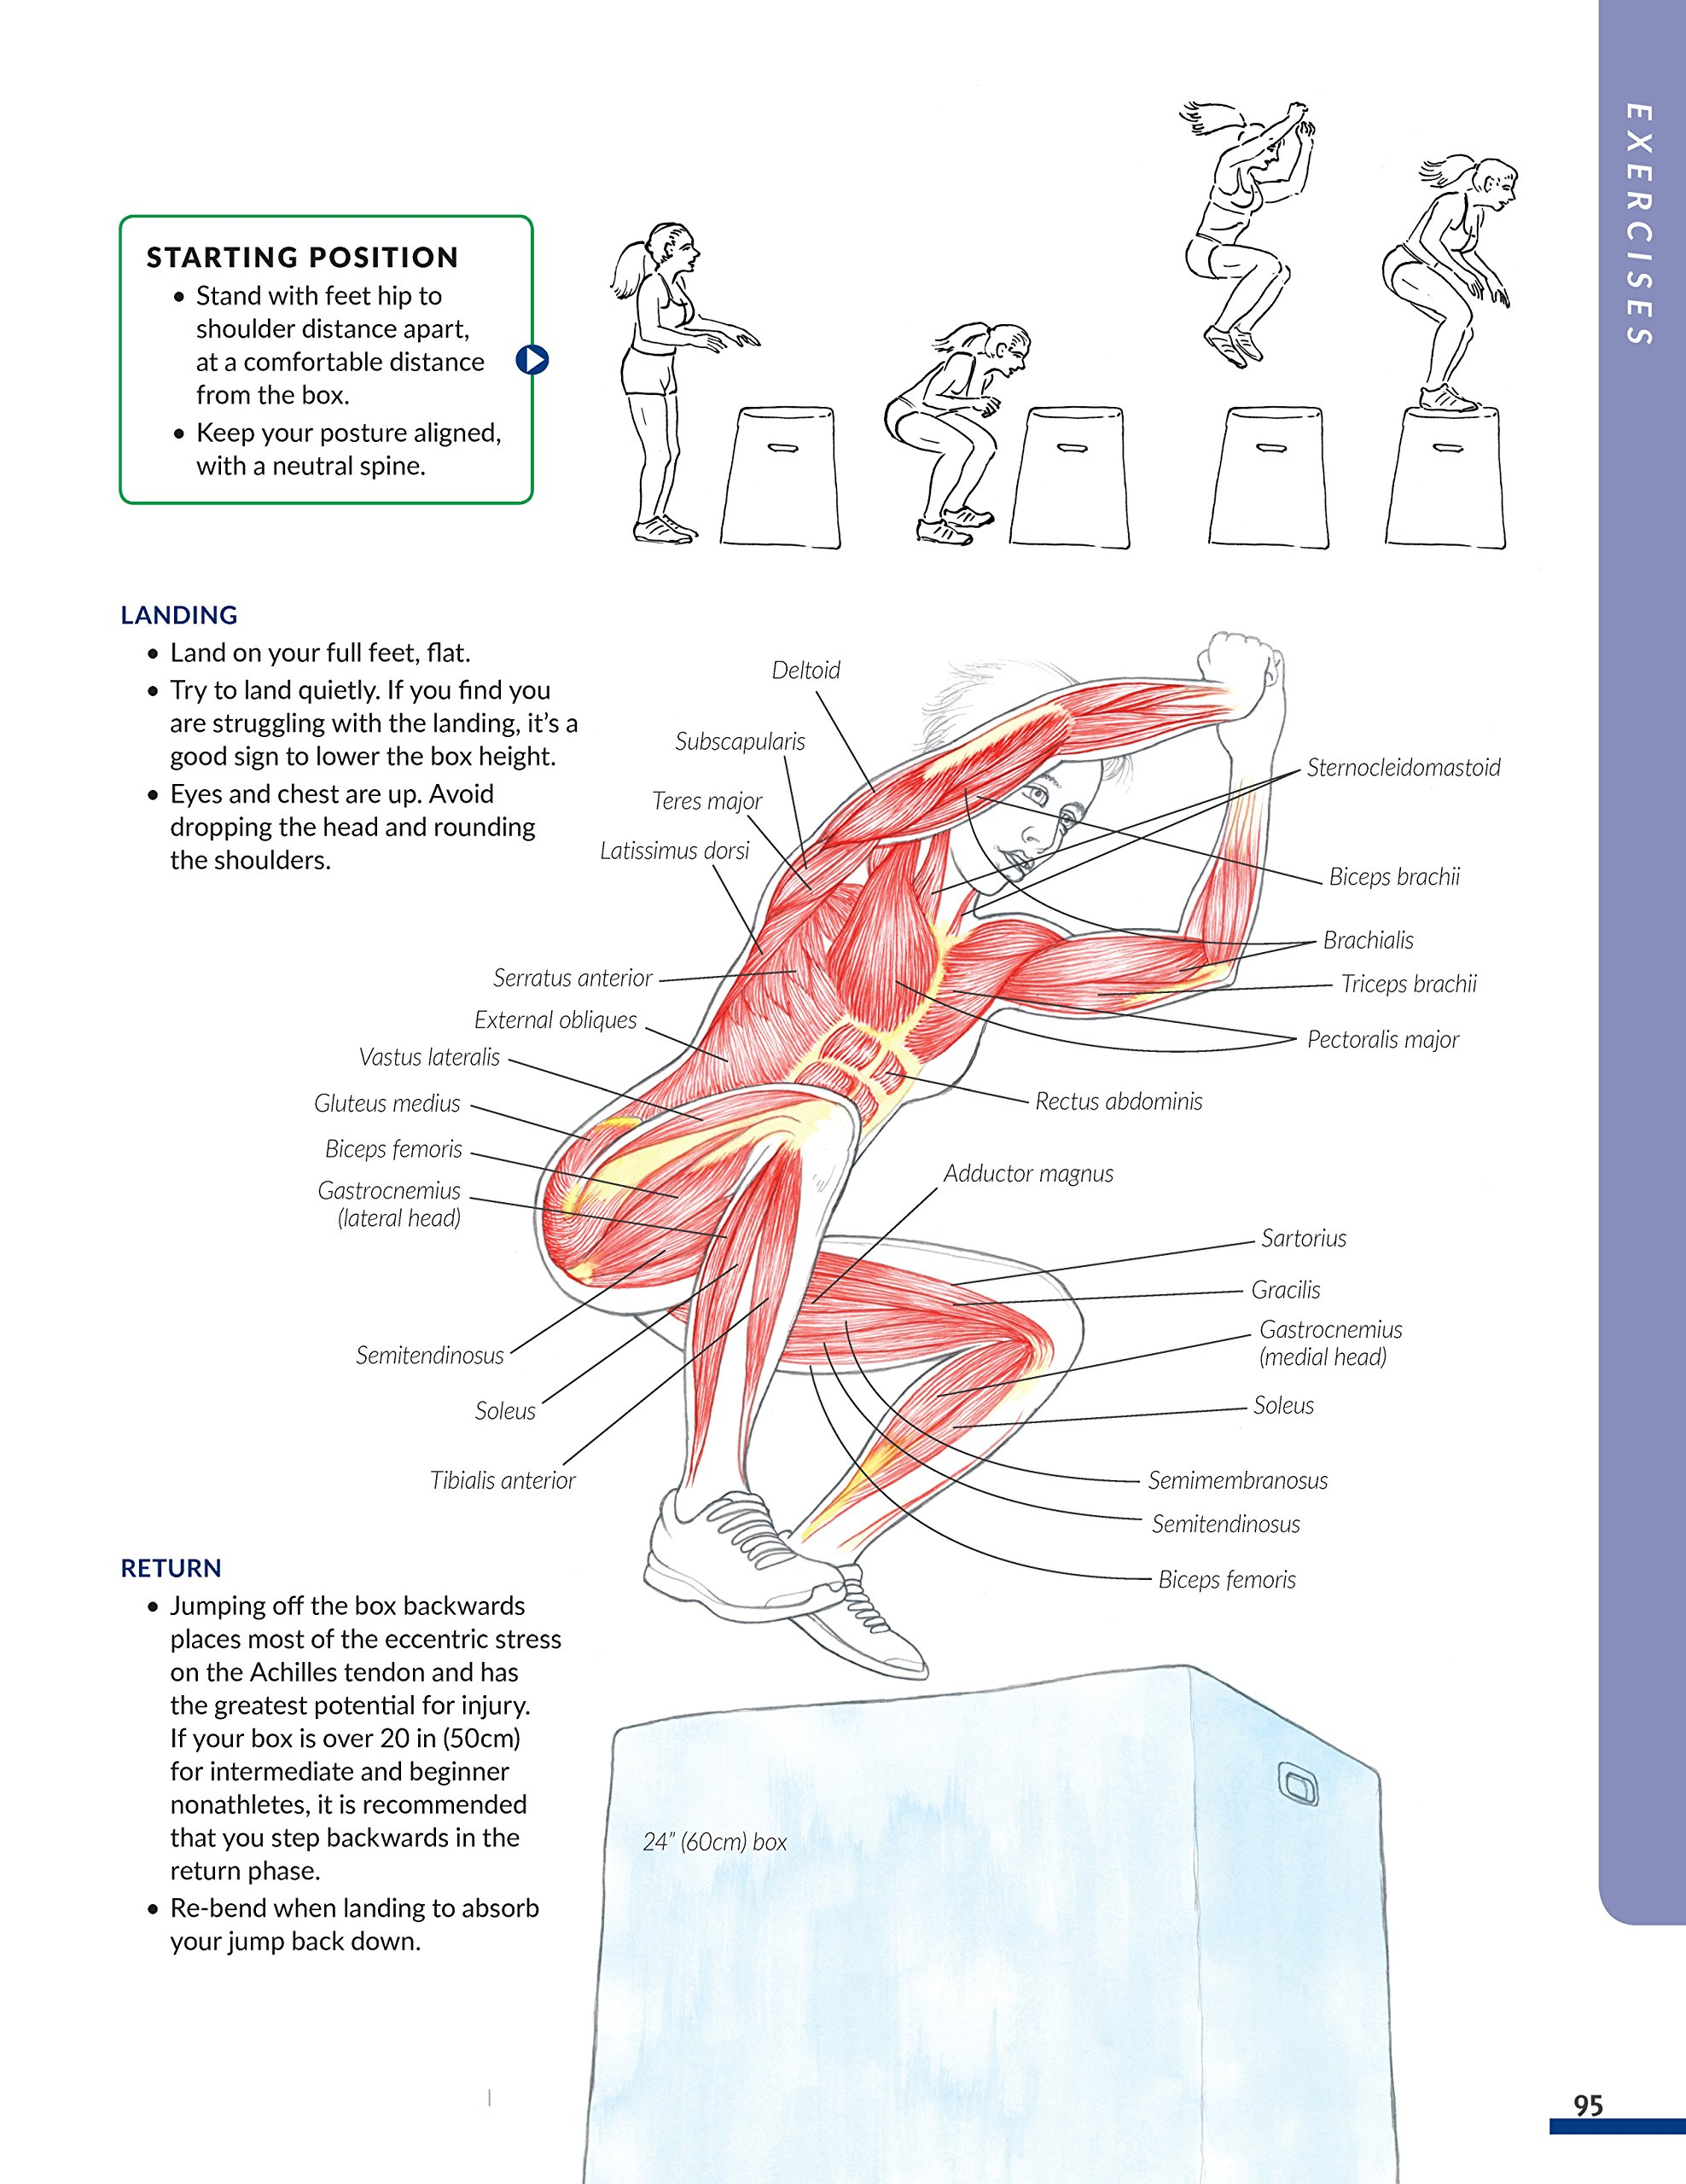 New Anatomy for Strength & Fitness Training: An Illustrated Guide to Your  Muscles in Action Including Exercises Used in CrossFit(r), P90X(r), ...